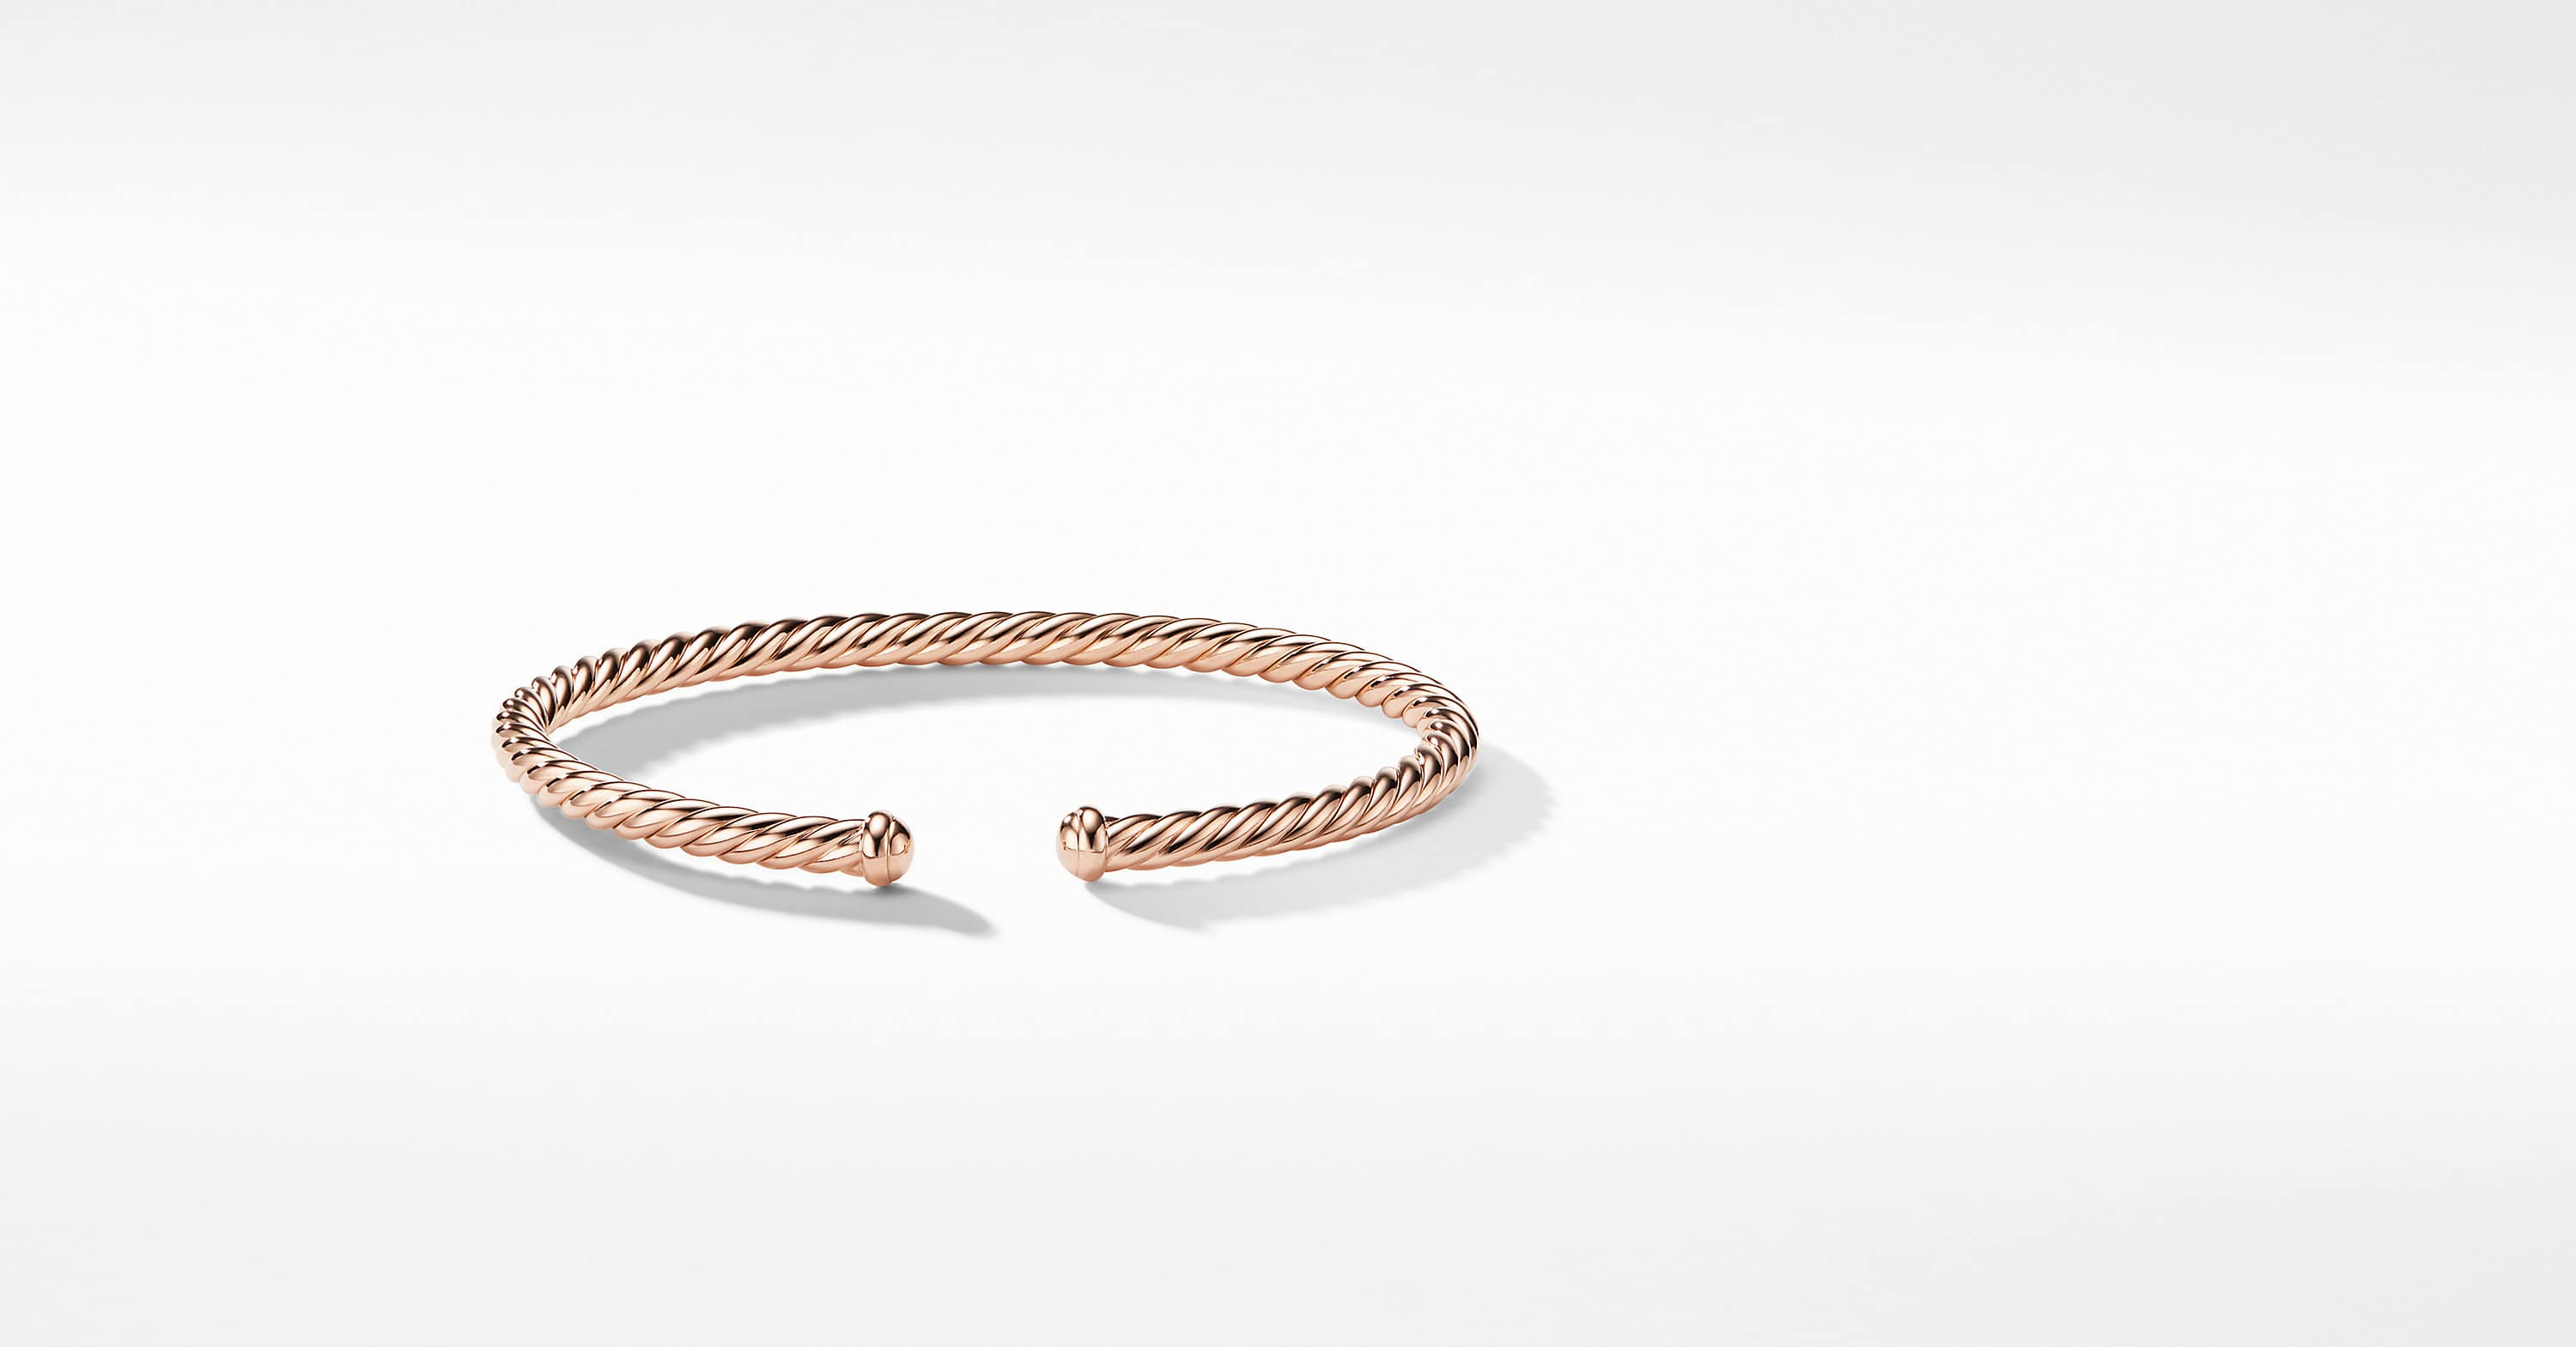 Cable Spira Bracelet in 18K Rose Gold, 4mm